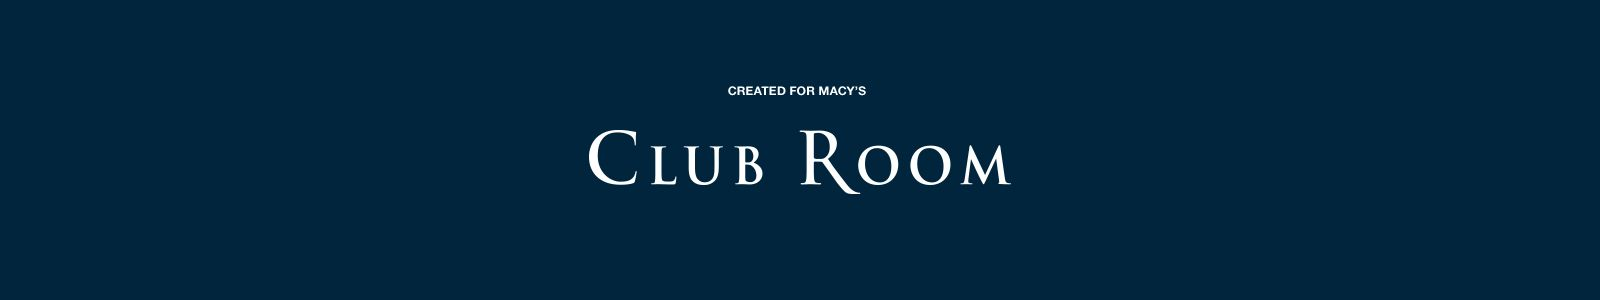 Created For Macy's Club Room